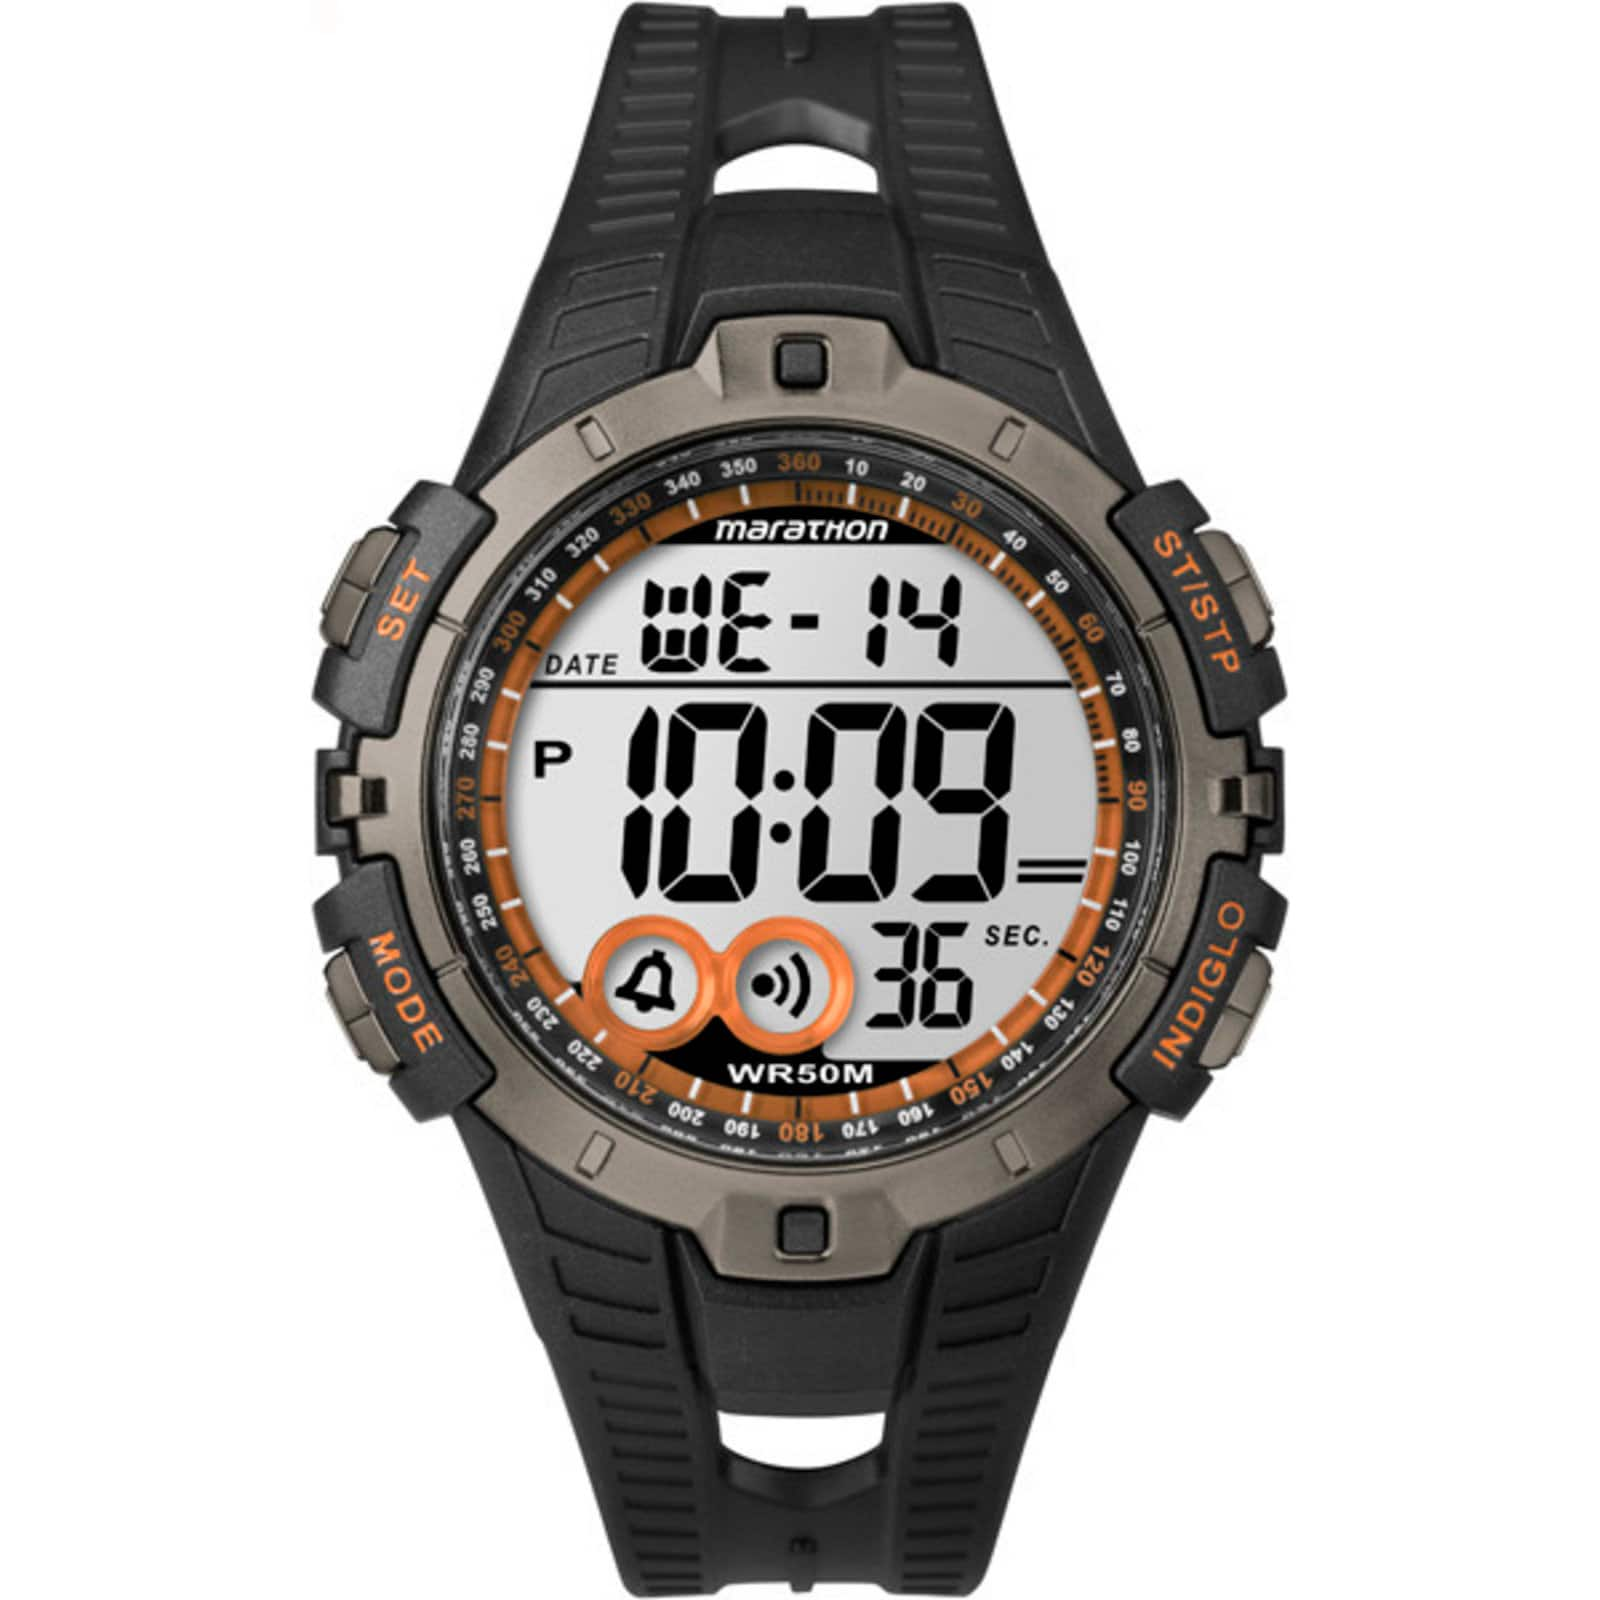 Timex Men's Marathon Digital Watch for $9.99 with free shipping